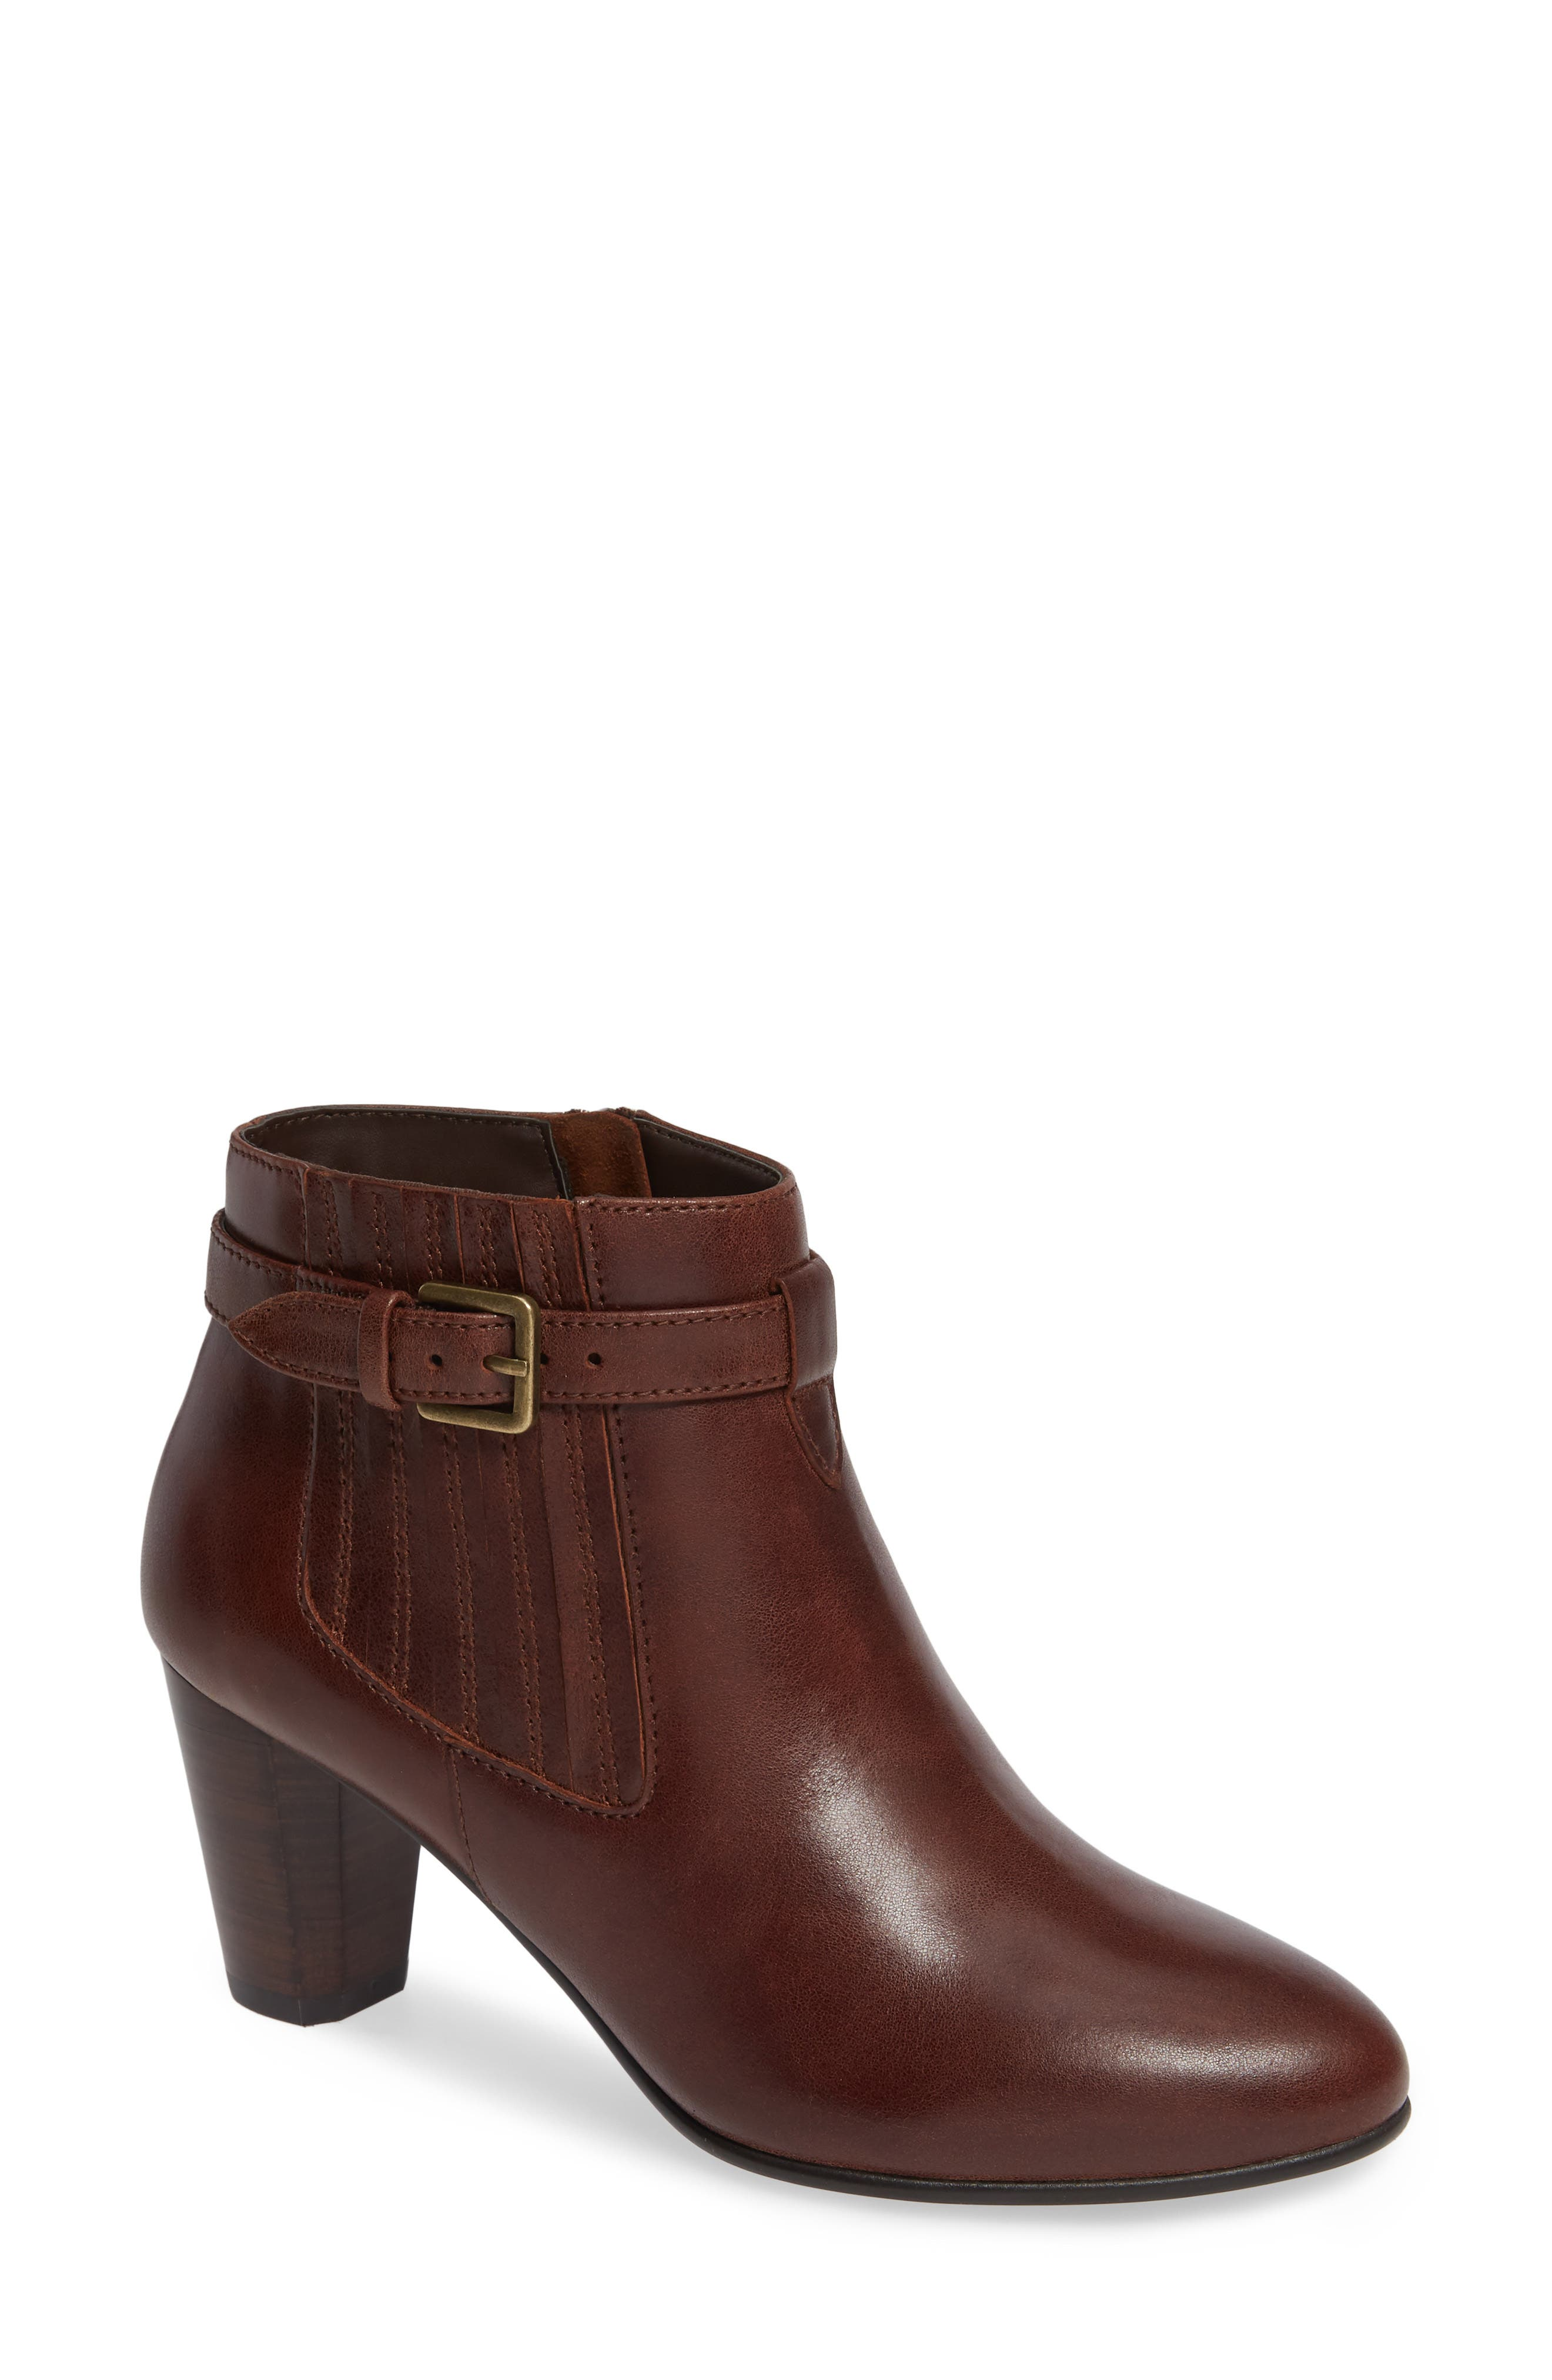 David Tate Opal Bootie WW - Brown